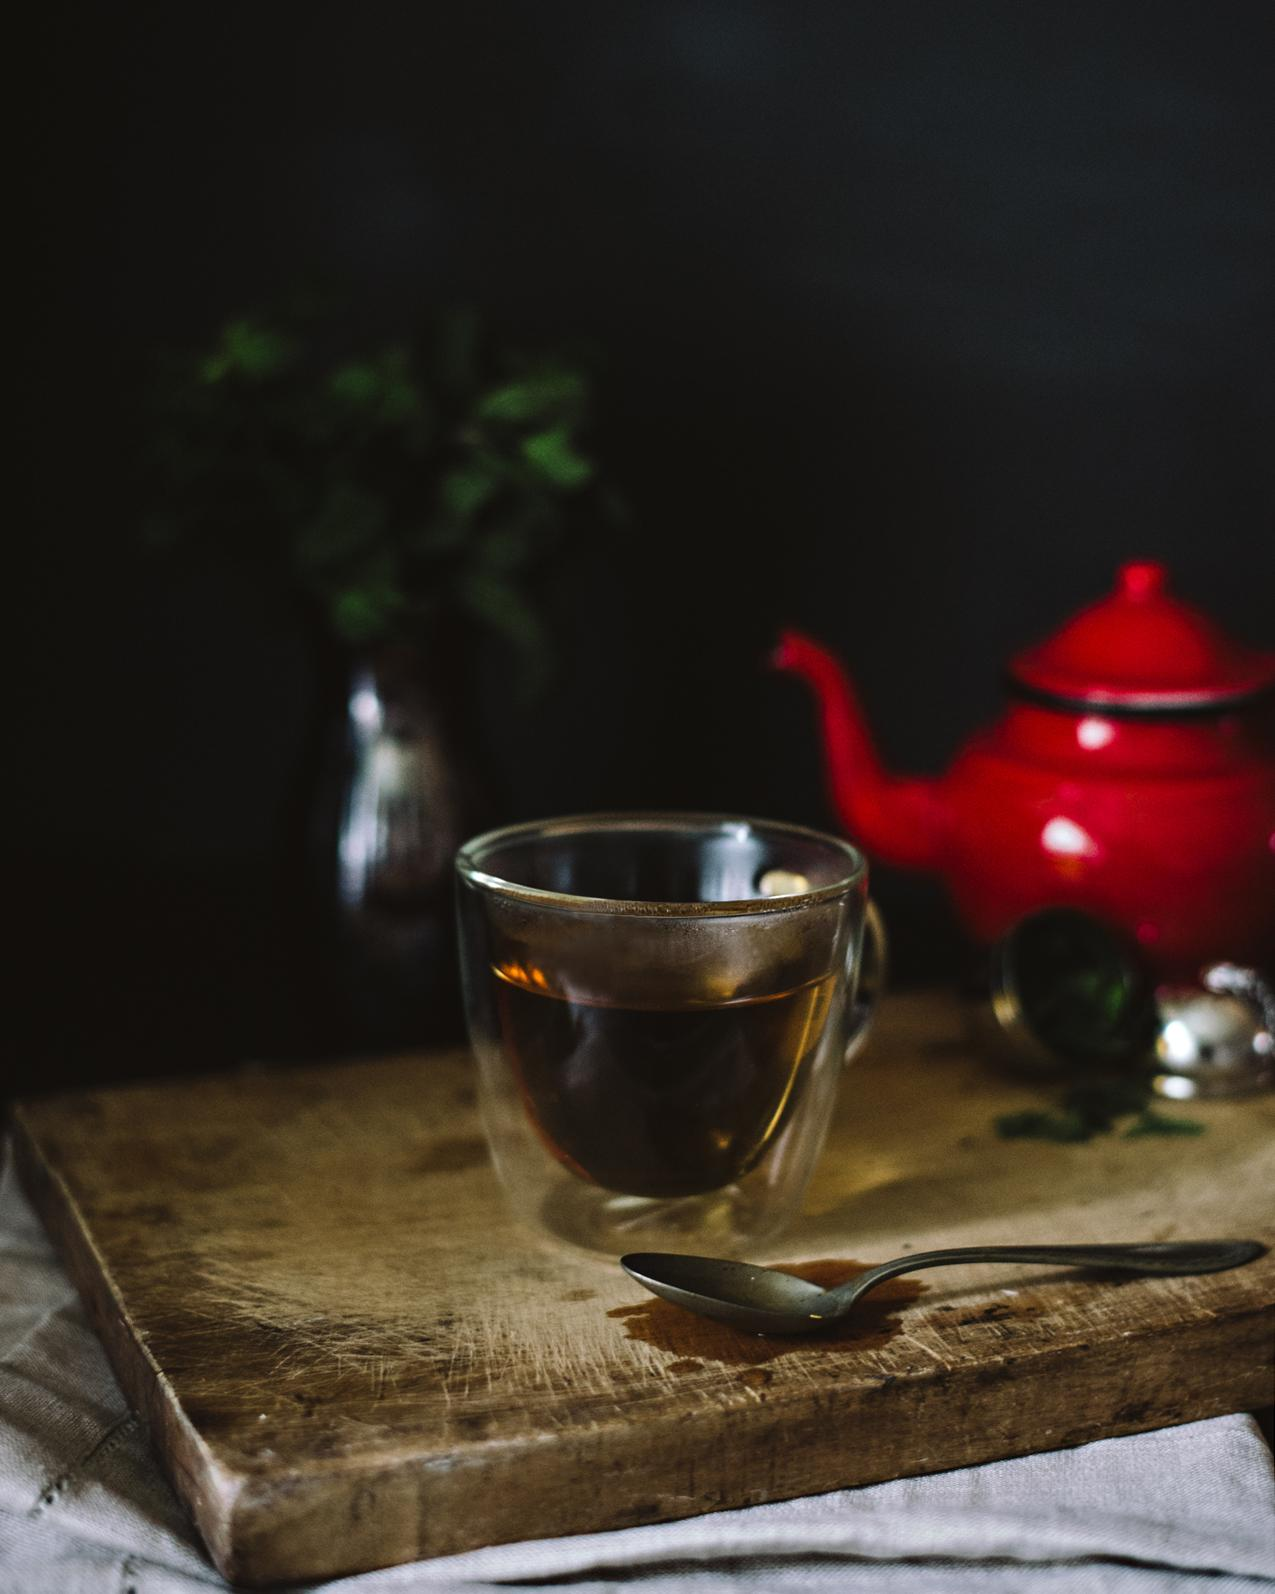 Cozy afternoon tea - image 3 - student project